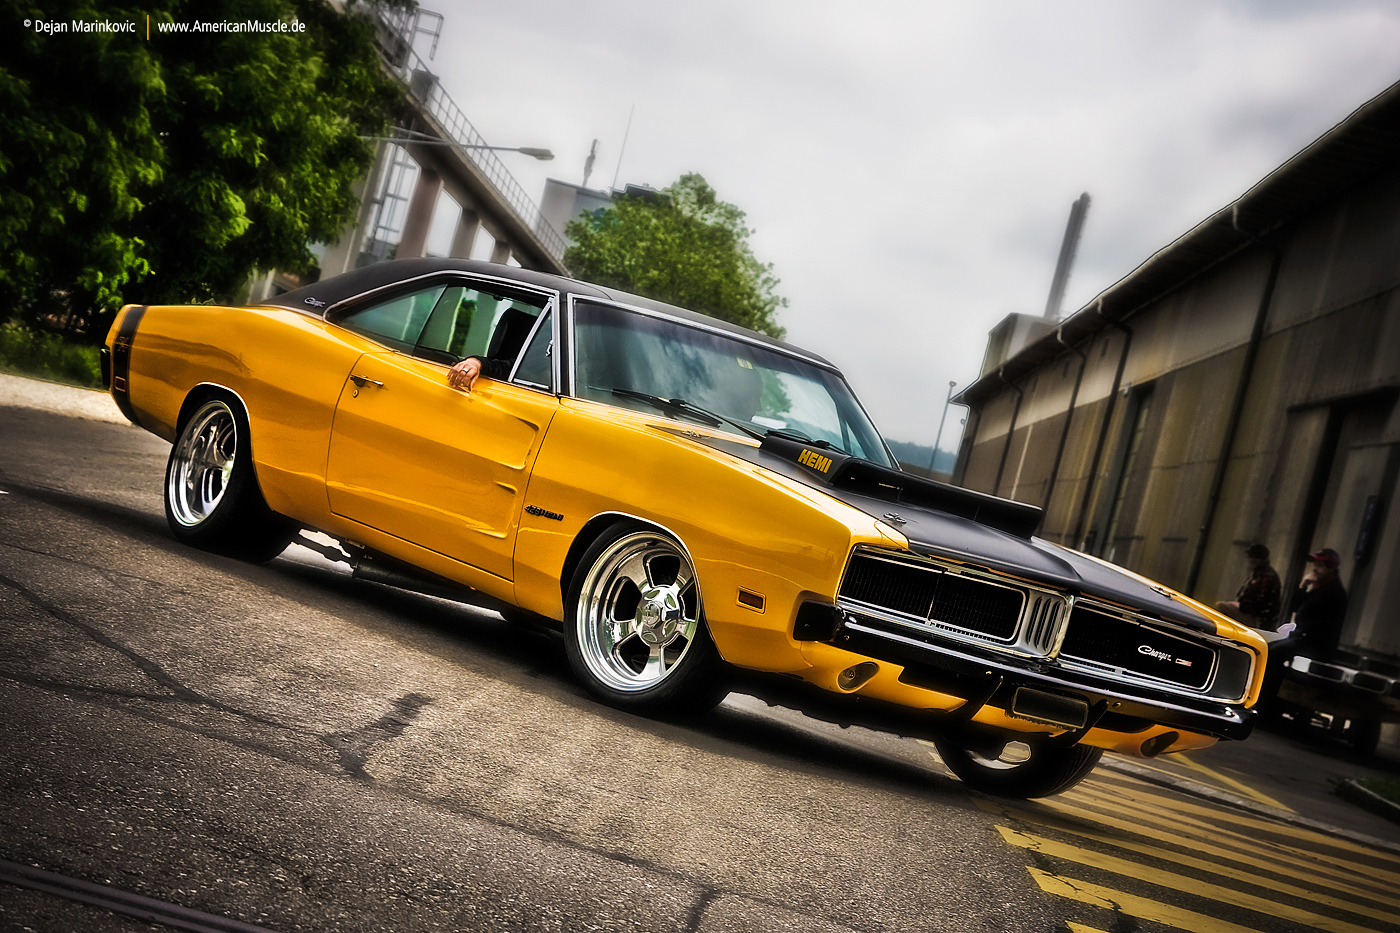 1969 Dodge Charger by AmericanMuscle